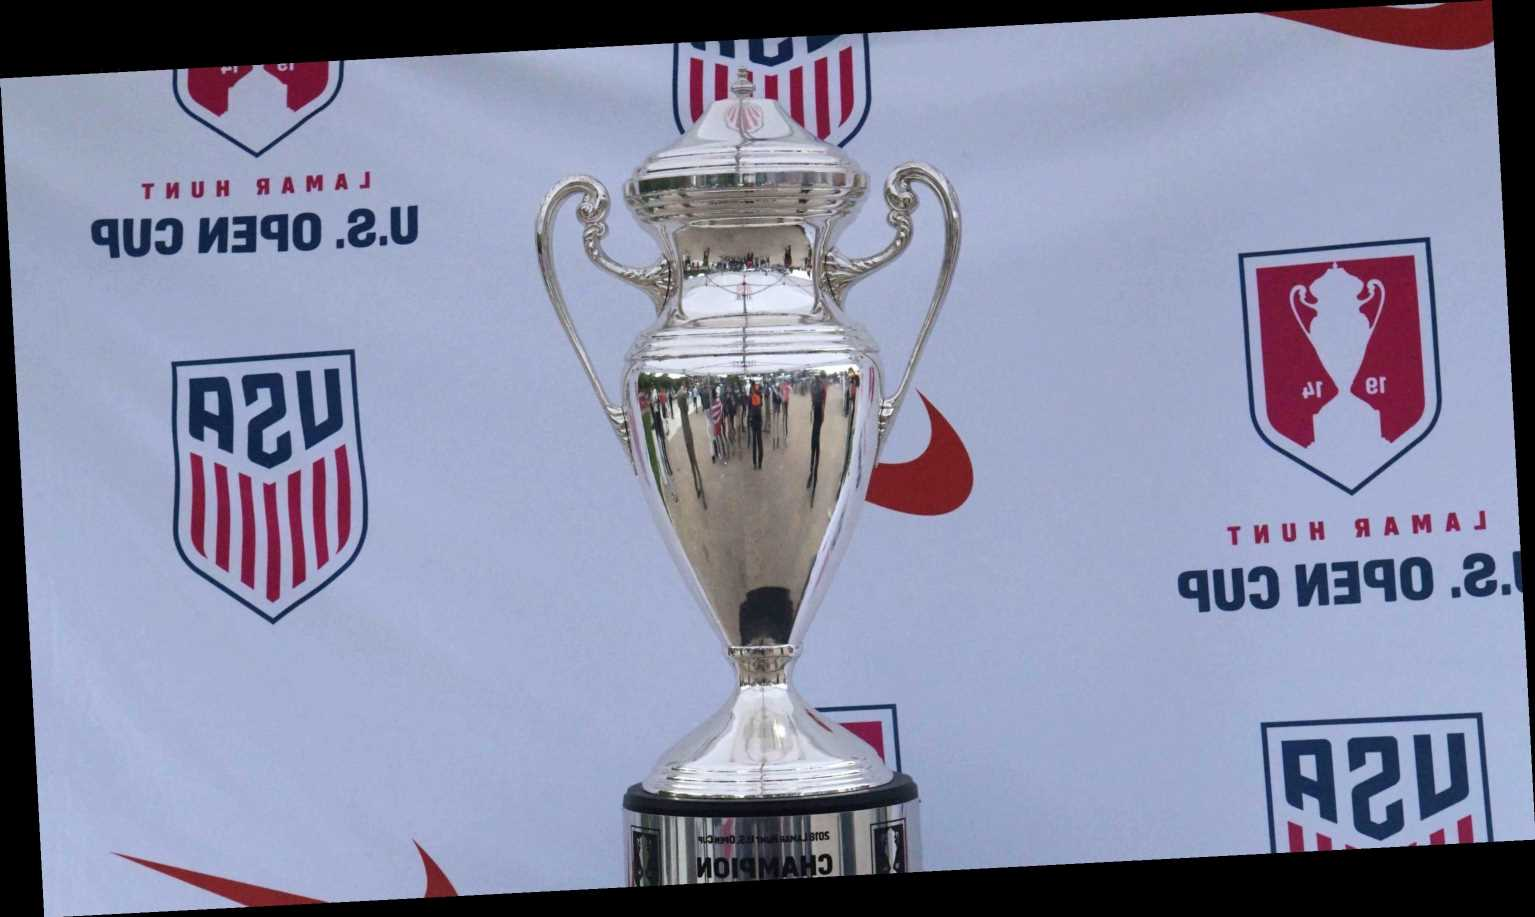 Lamar Hunt U.S. Open Cup, America's club soccer competition, canceled due to COVID-19